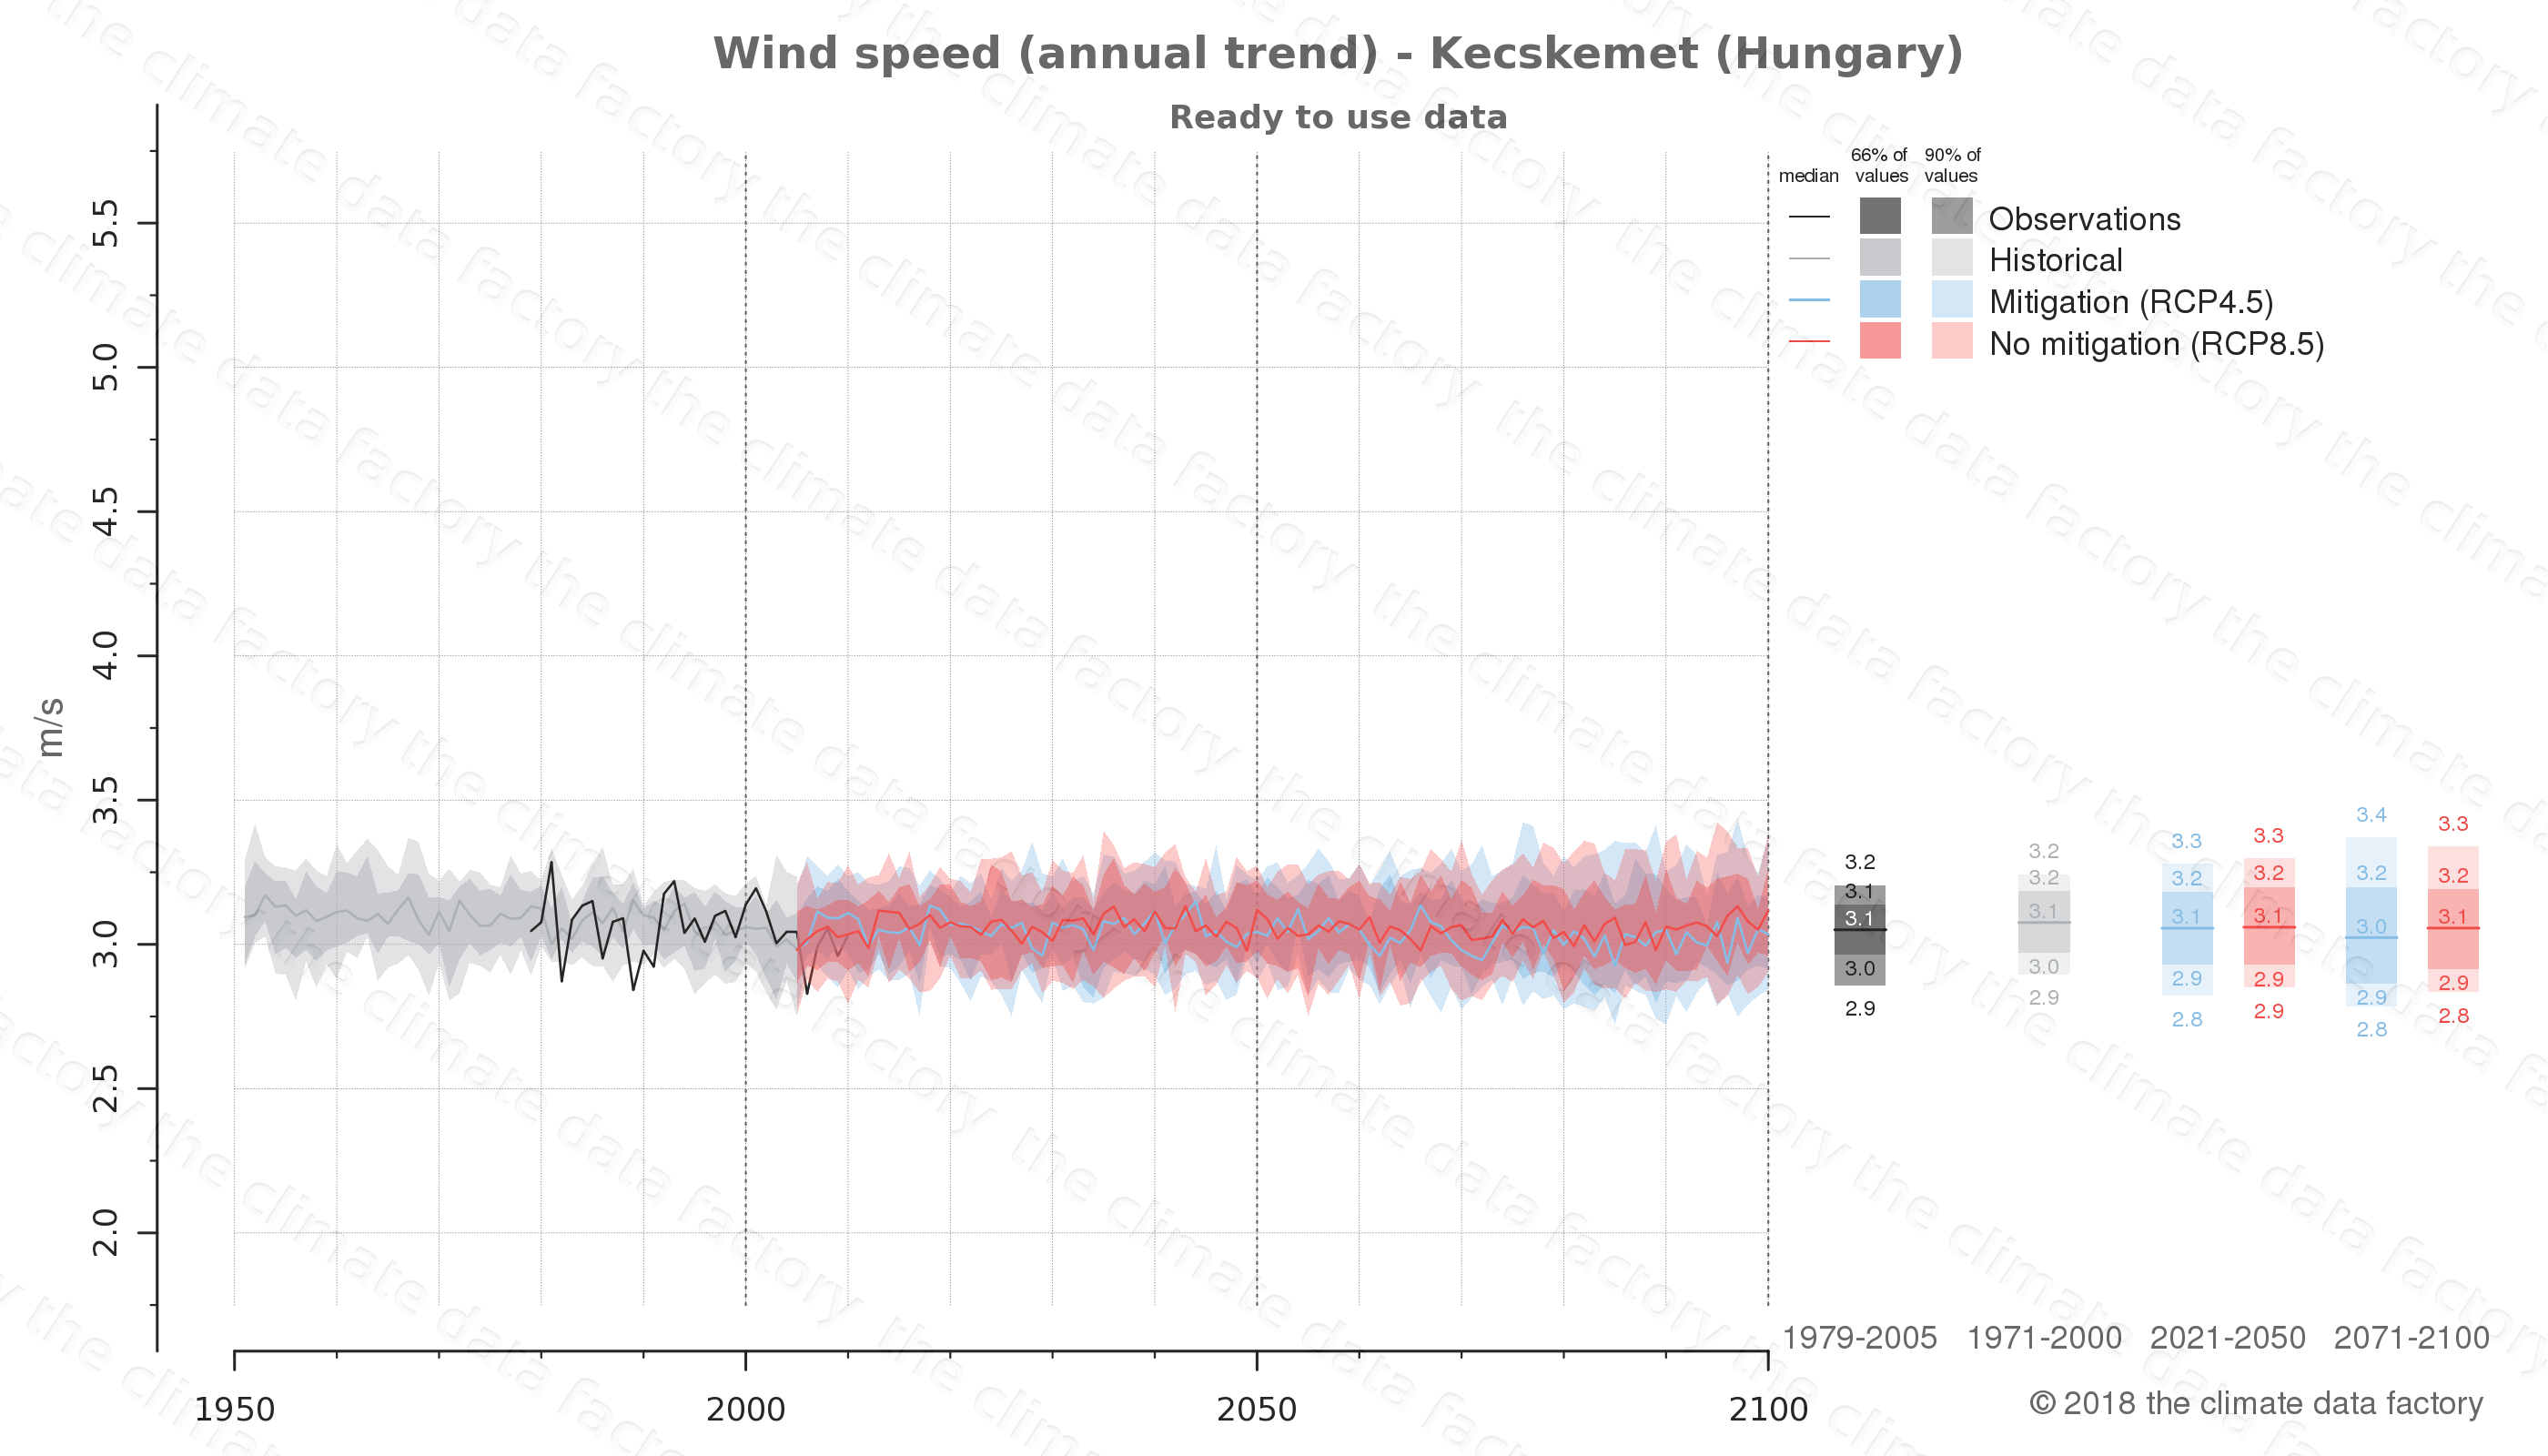 climate change data policy adaptation climate graph city data wind-speed kecskemet hungary